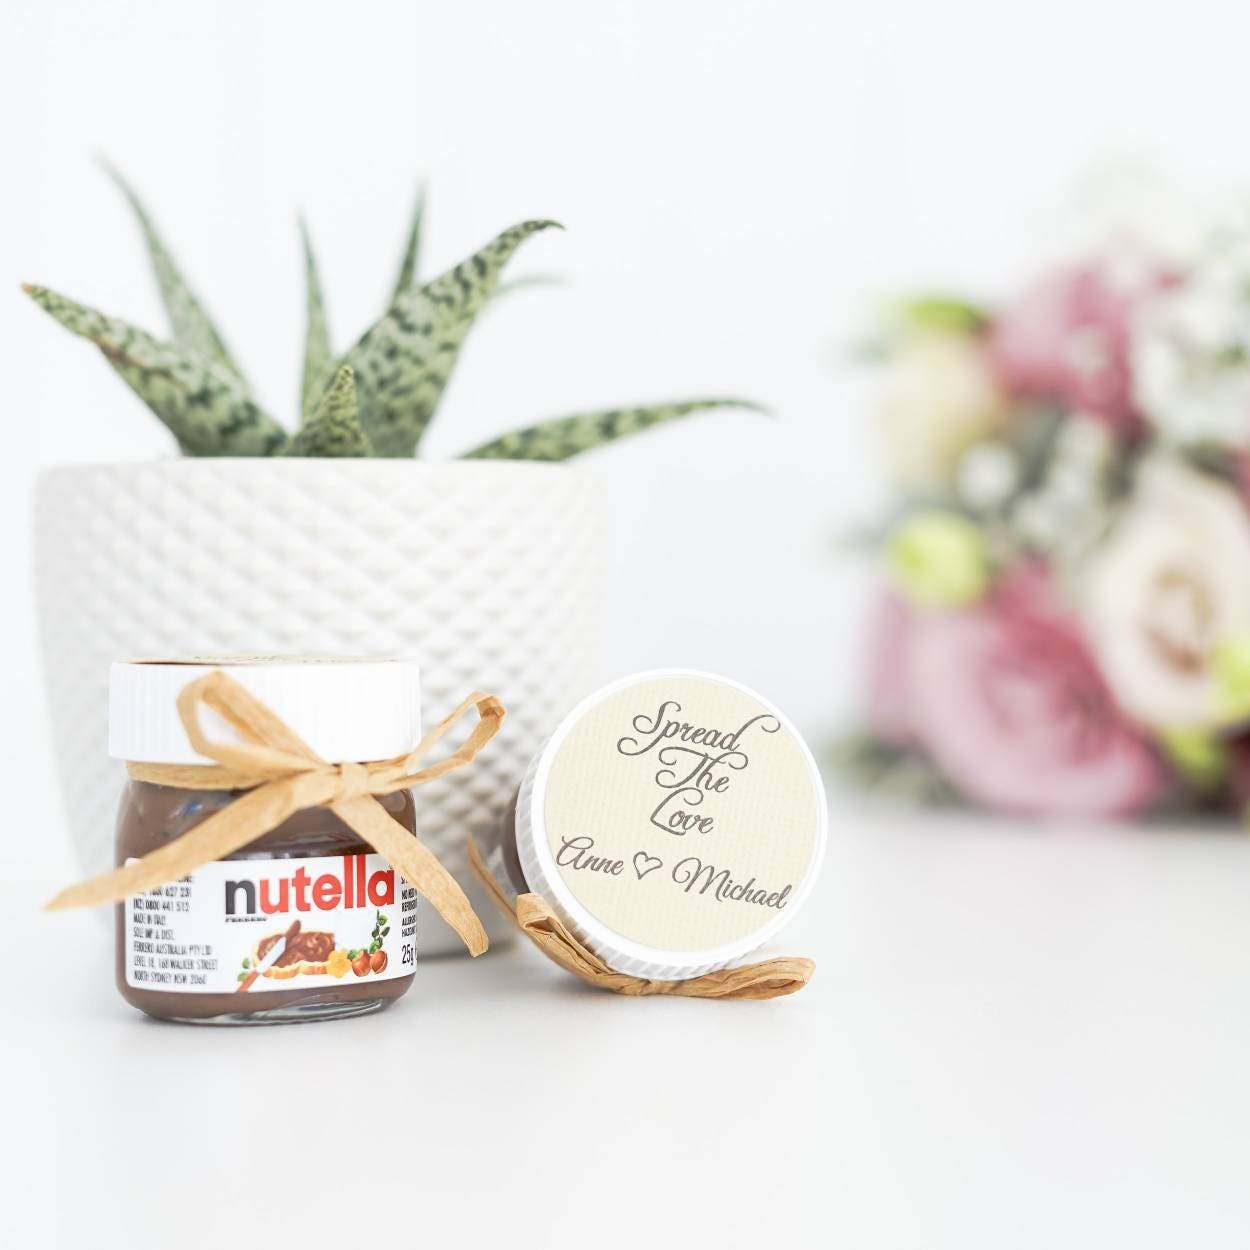 Mini Nutella Spread The Love Unique Favour/ Wedding Favour/